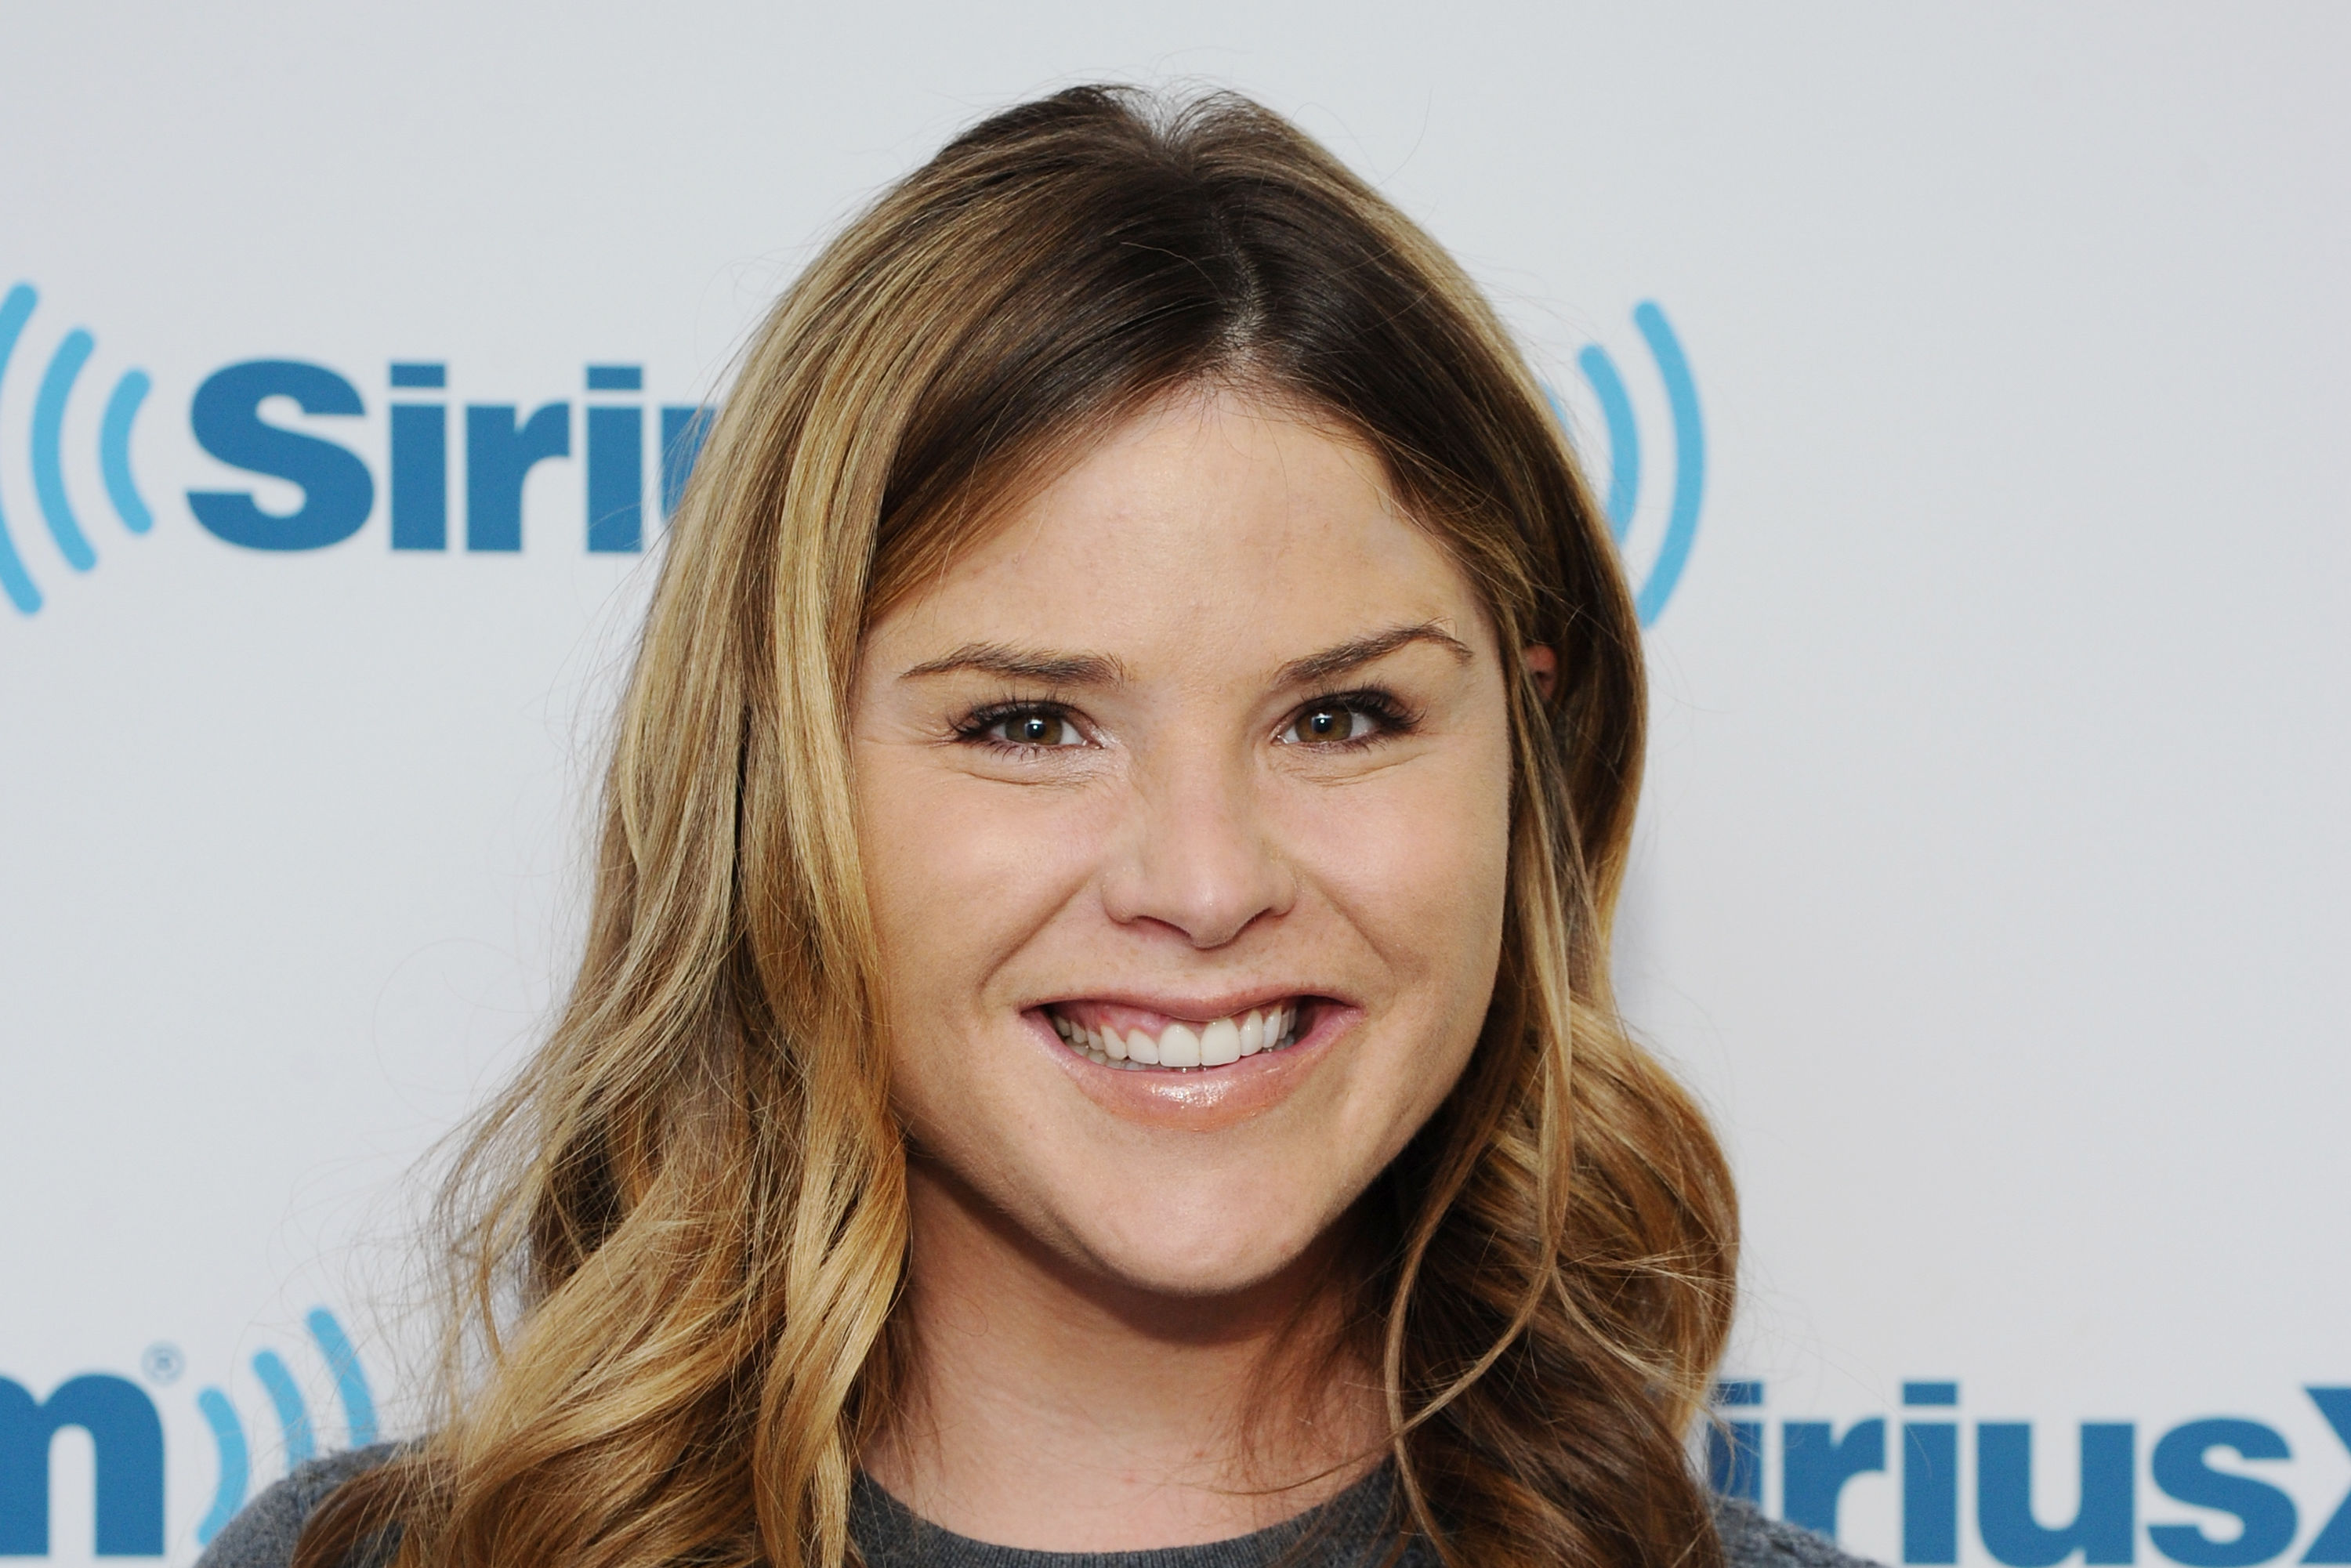 Watch Jenna Bush Hager Call Her Dad in the Middle of This 2007 Episode of Ellen